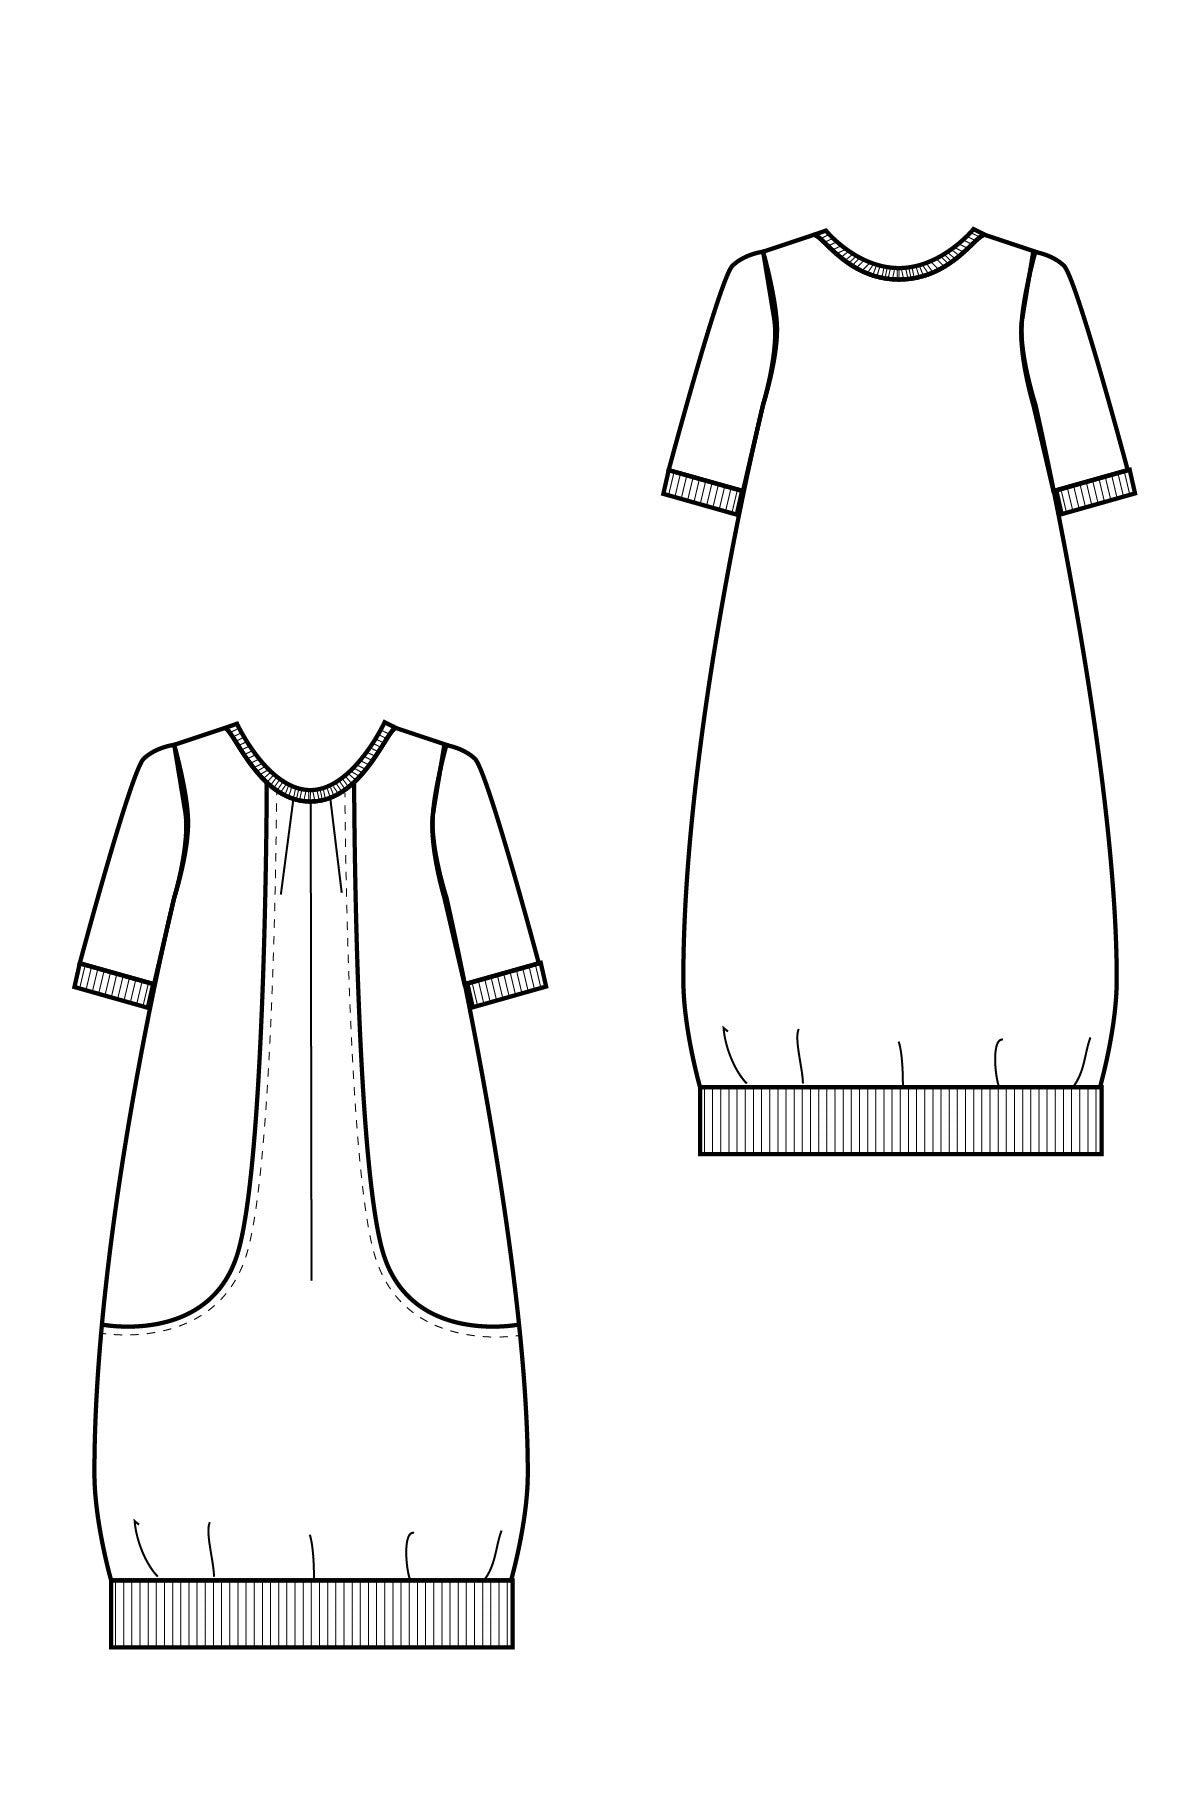 Pocket Full of Posies Dress Sewing Pattern for Women's